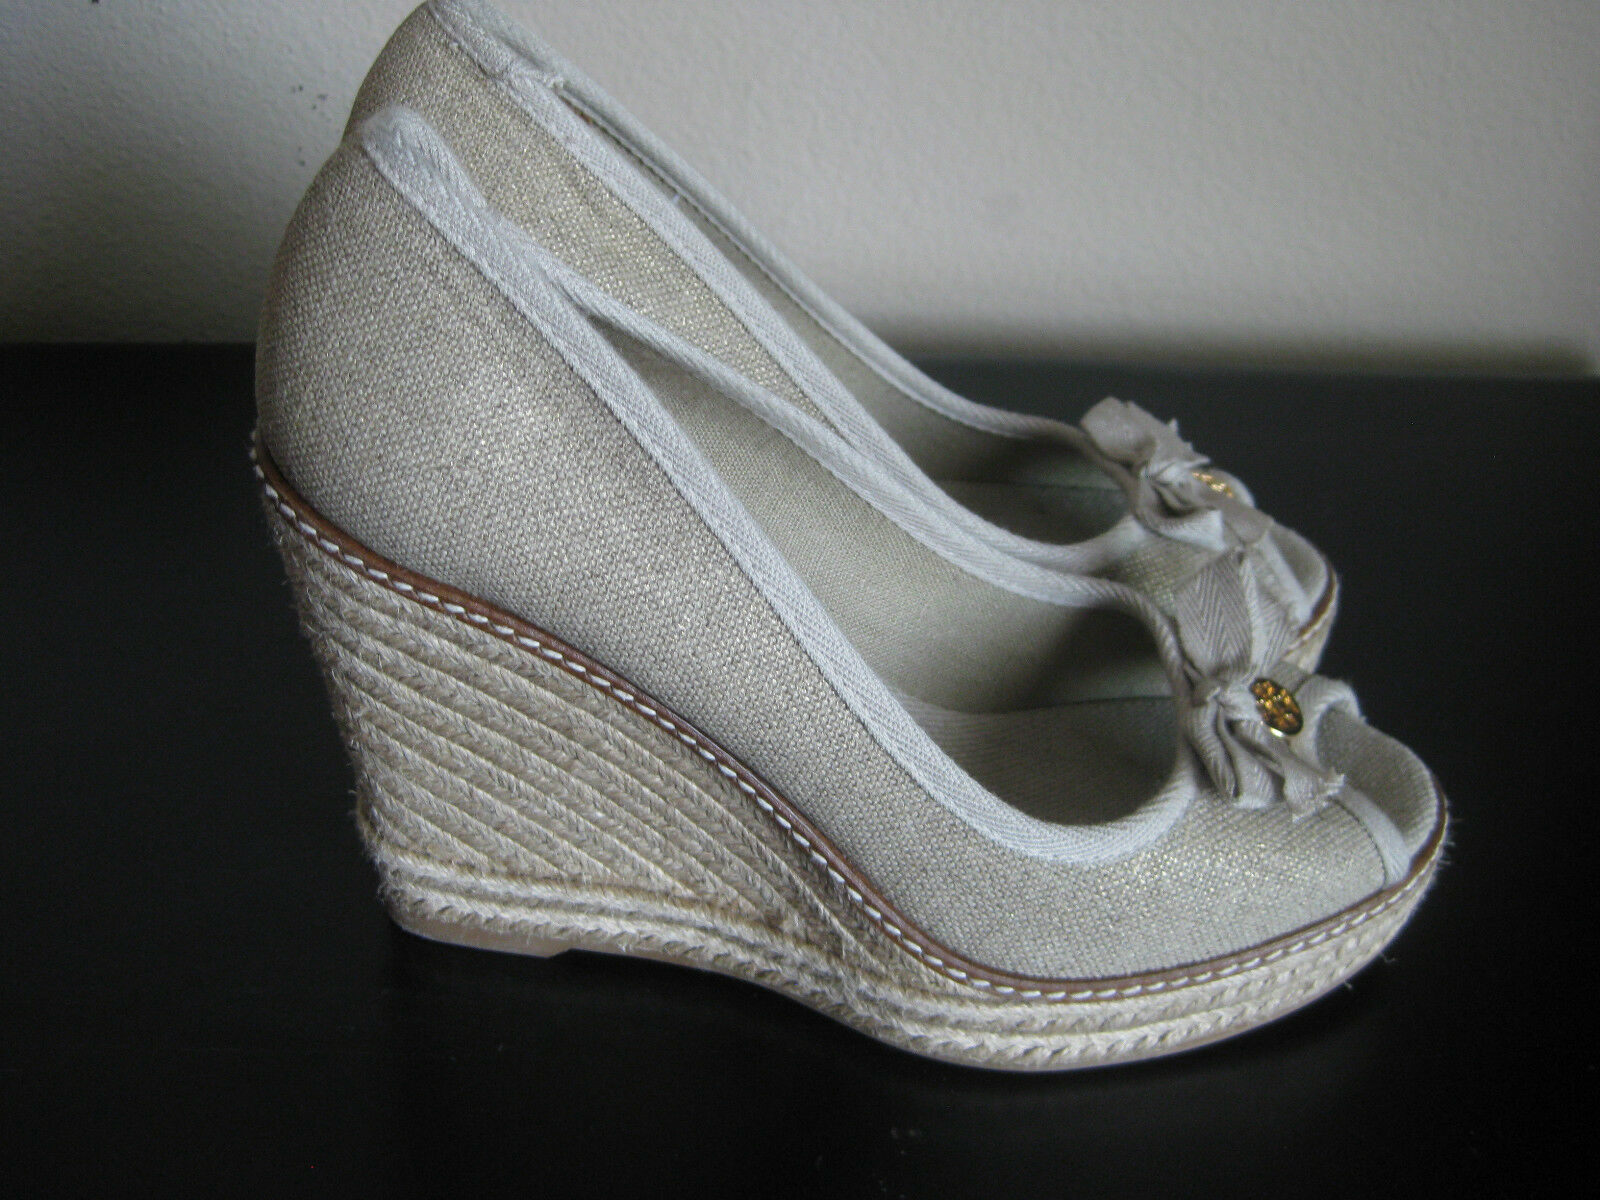 NEW IN BOX TORY BURCH BURCH BURCH JACKIE ESPRADILLE WEDGE LINEN SANDAL chaussures Taille 9.5 934cc5